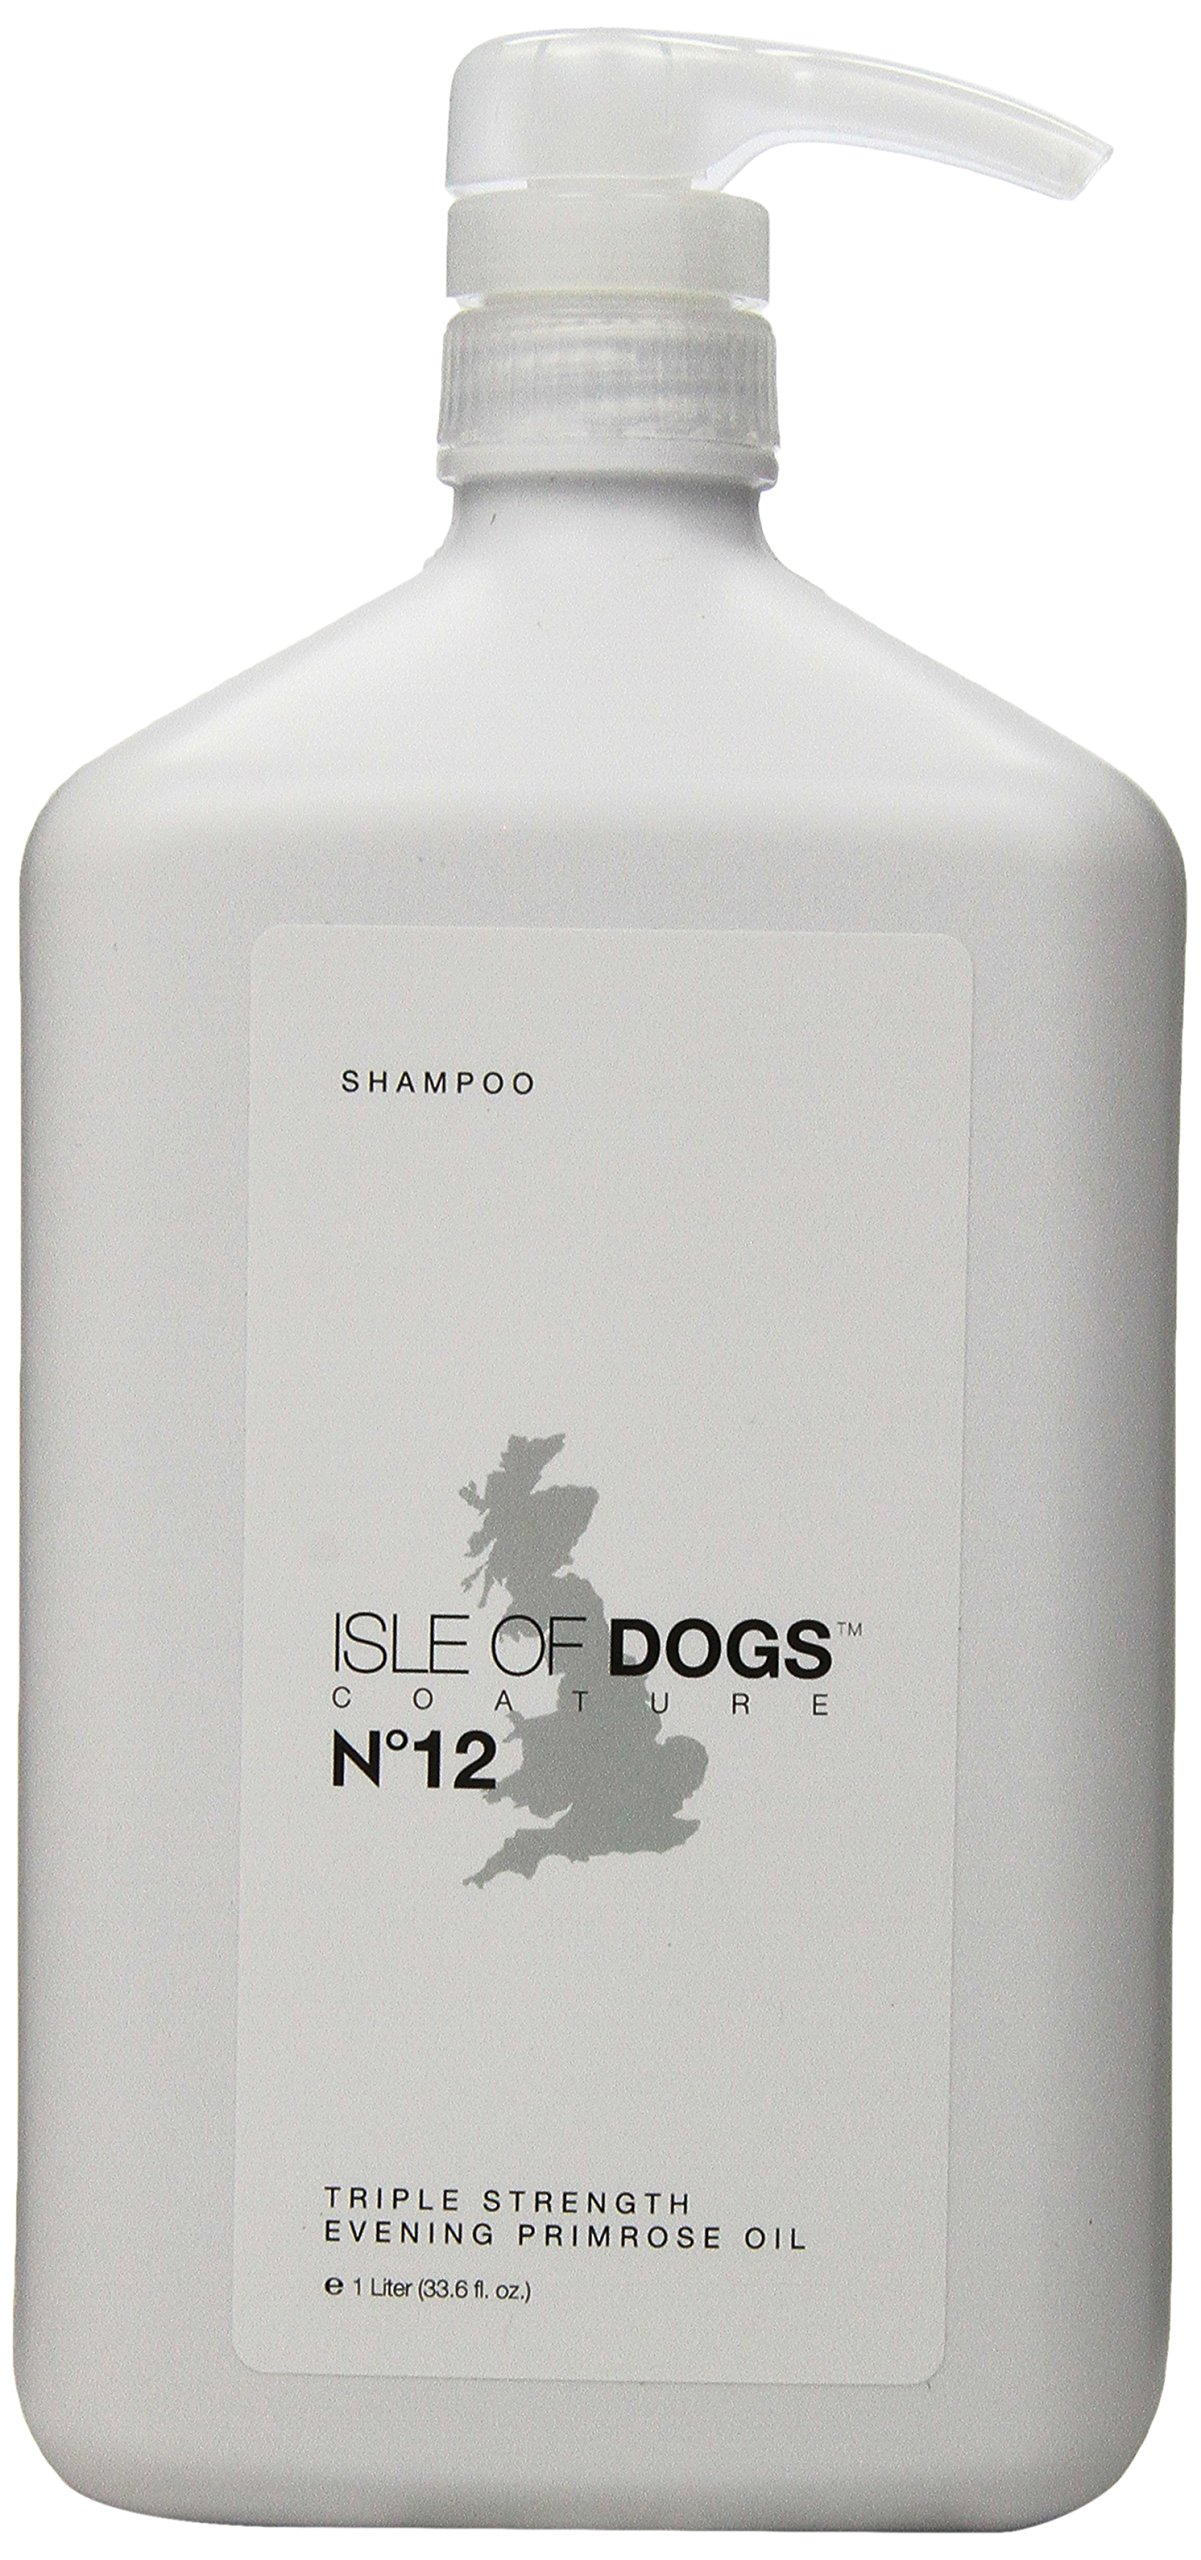 Isle of Dogs Coature No. 12 Veterinary Grade Evening Primrose Oil Dog Shampoo for itchy or Sensitive Skin, 1 liter by Isle of Dogs